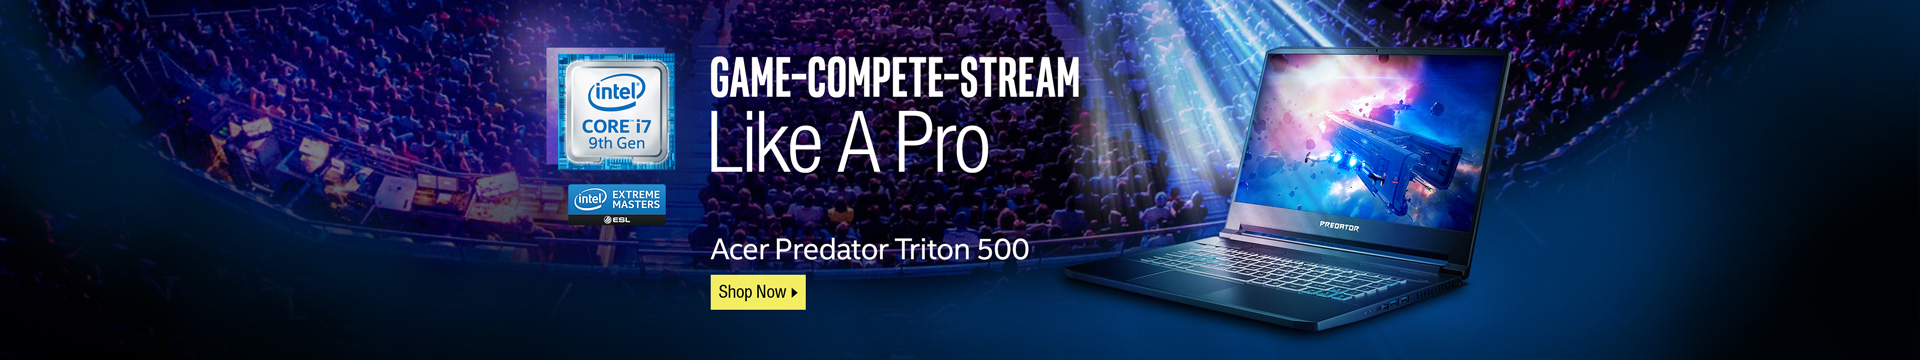 Game–Compete–Stream Like A Pro